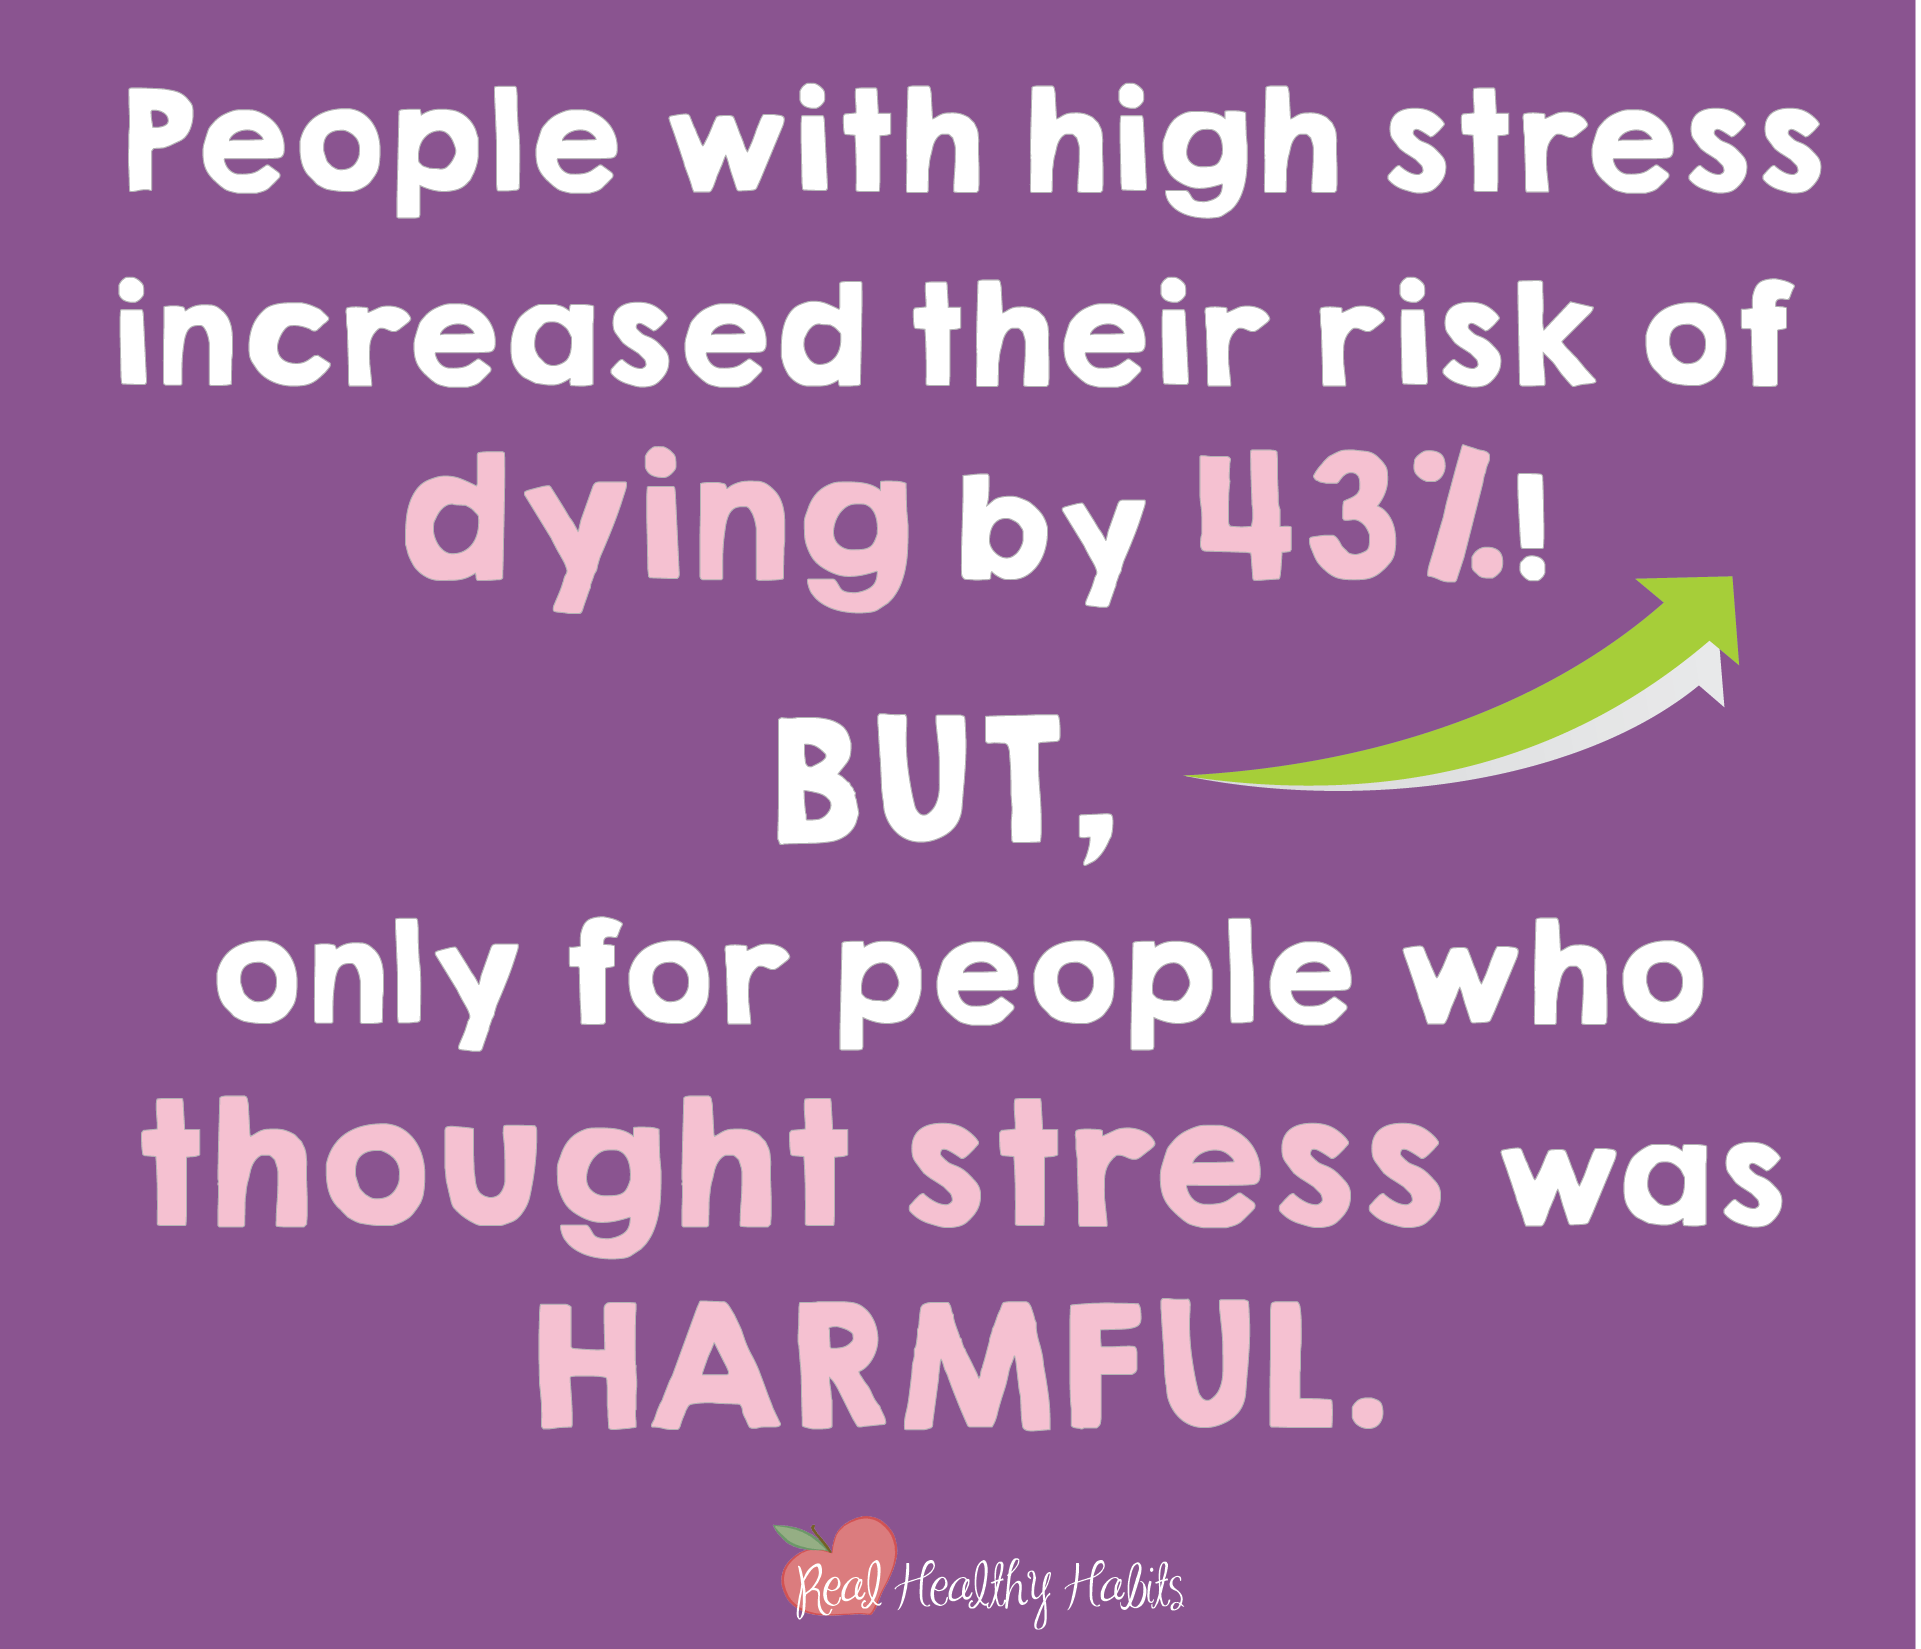 Stress can be helpful or harmful—you choose which one. People who believe stress is harmful are at increased risk of dying, but only if they believe stress is harmful. You can believe it's helpful too. | How to Make Stress Your Superpower: Stress Paradox #2 | www.realhealthyhabits.com